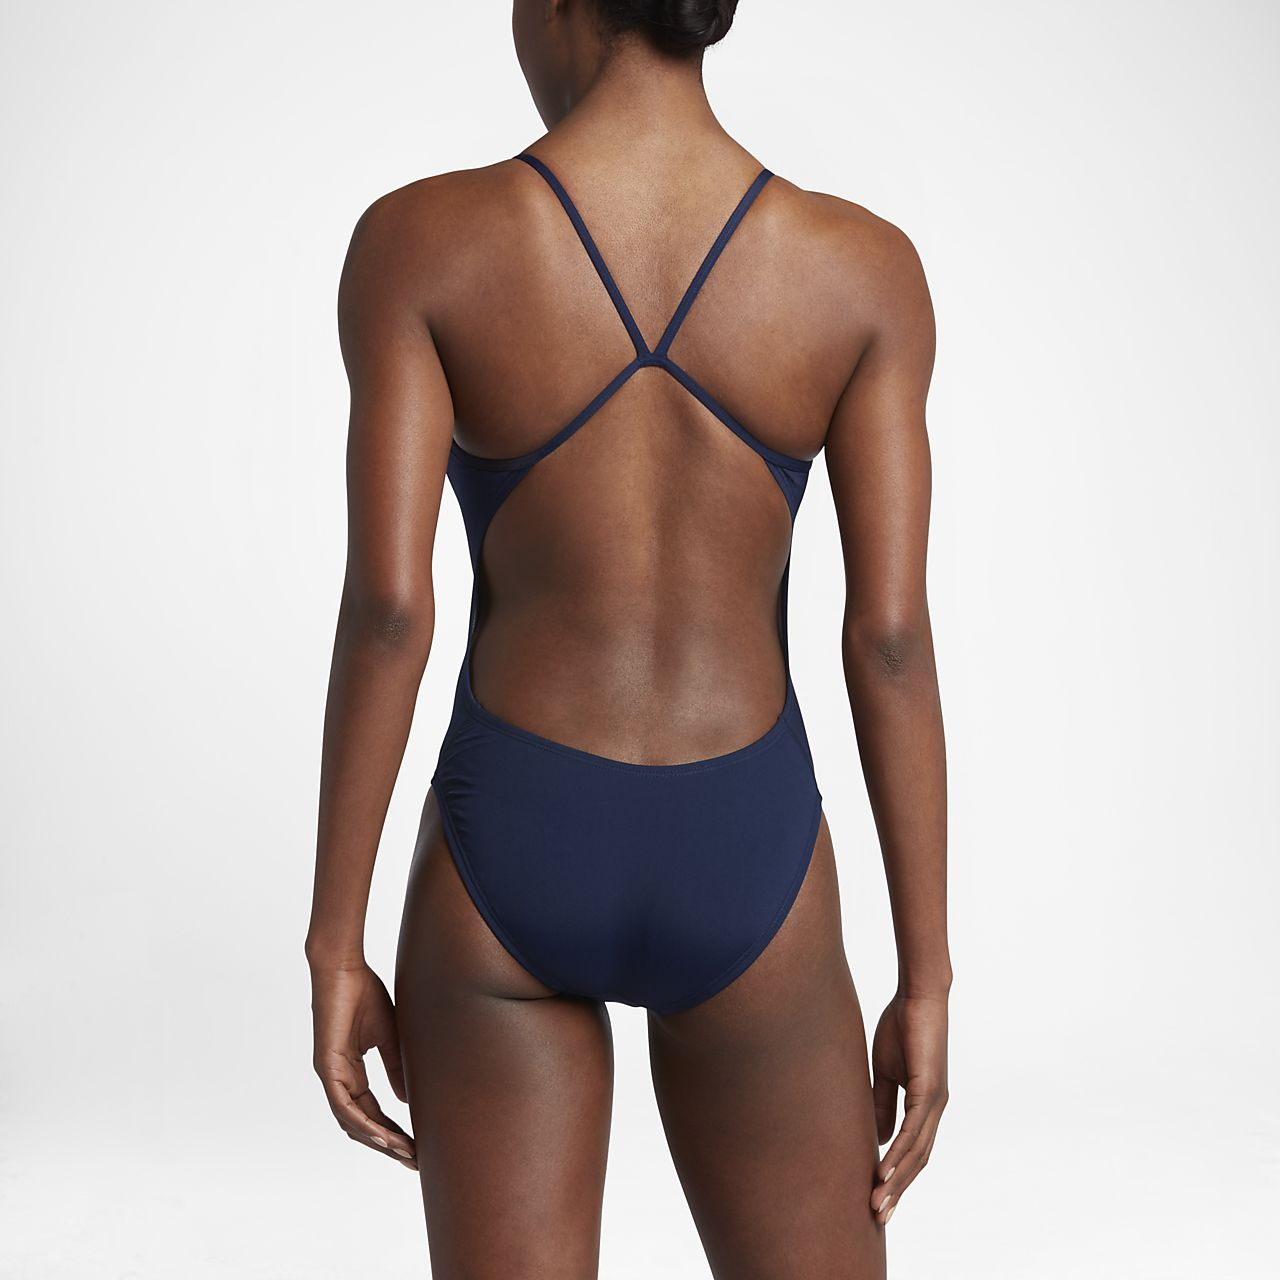 c6868789 nike low back swimsuit Sale. Up to 57% Off. Free Shipping & Returns